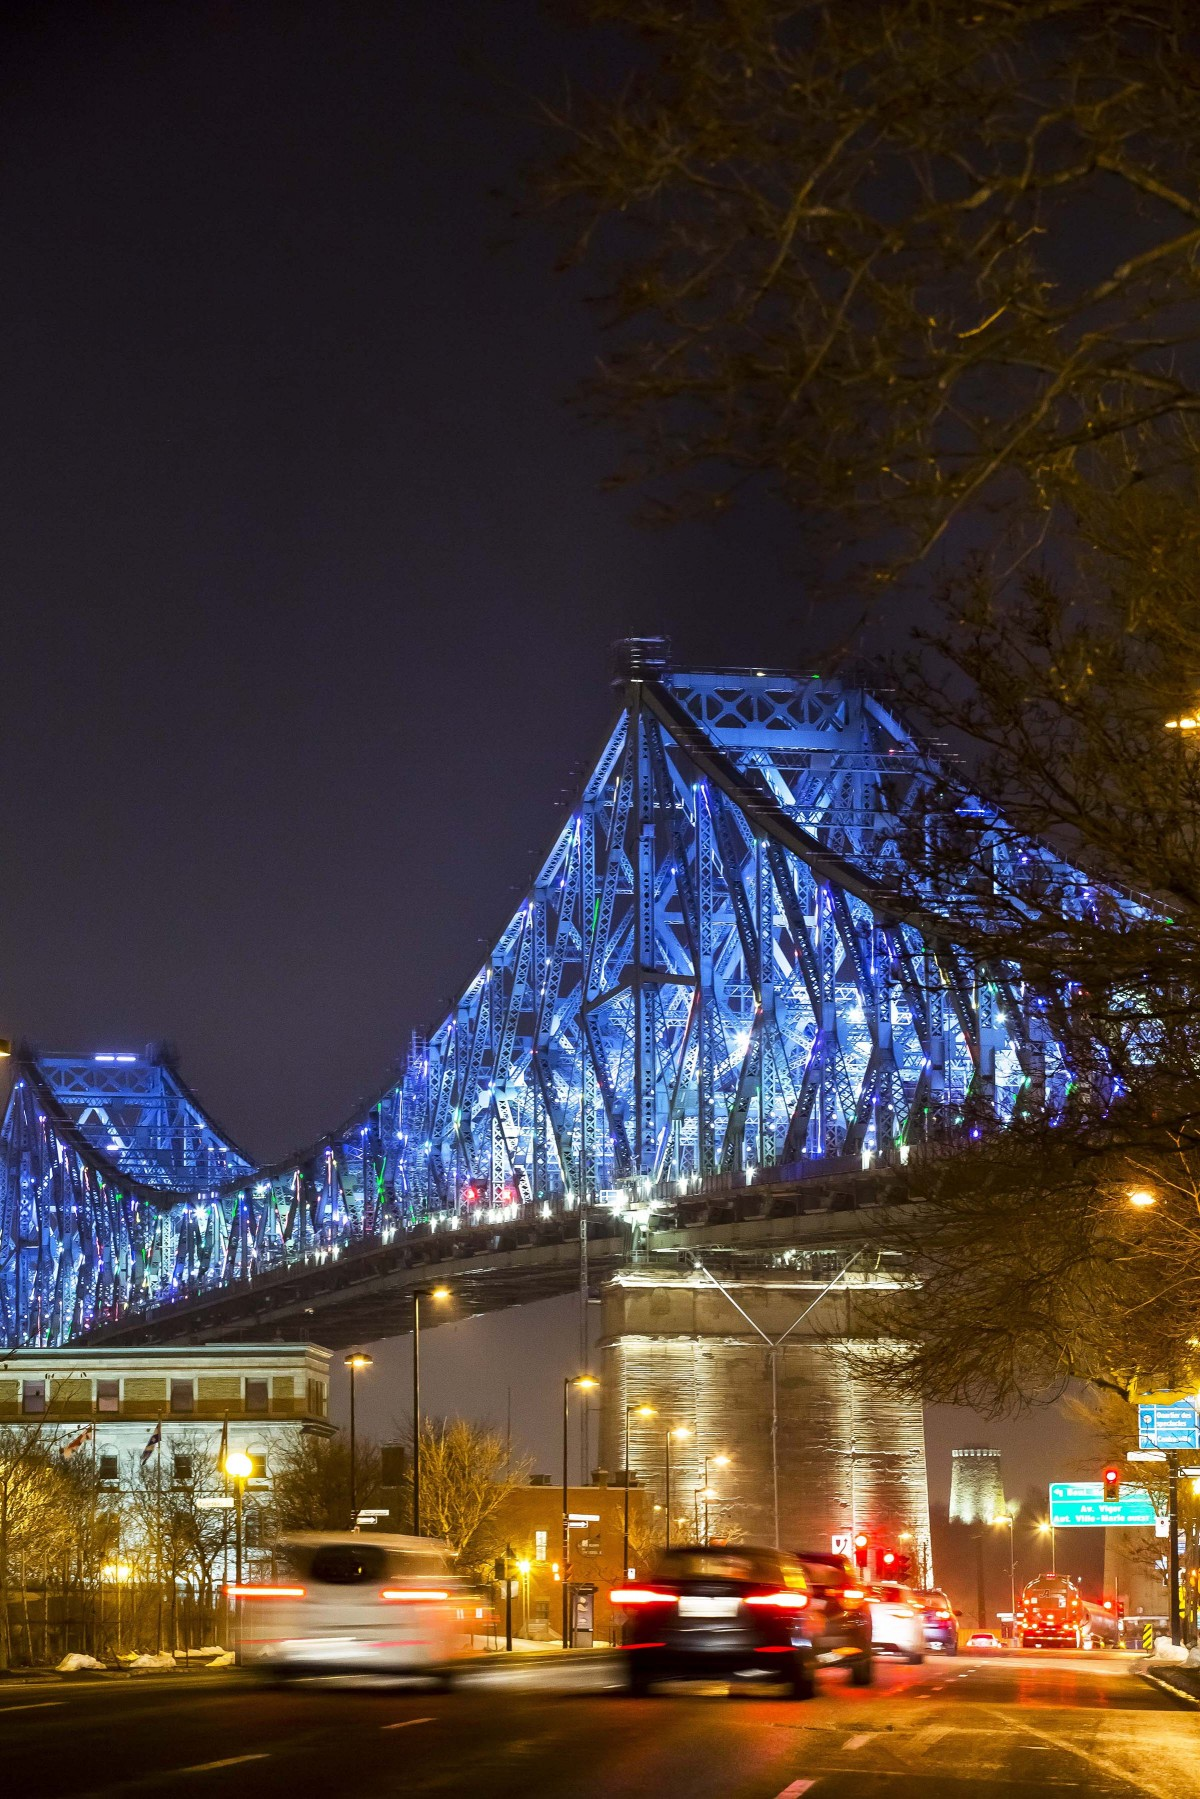 The most important was the 3G vibration rating and knowing with certainty that the products' performance would withstand the constant vibrations of the passing traffic. – The Jacques Cartier and Champlain Bridges Incorporated